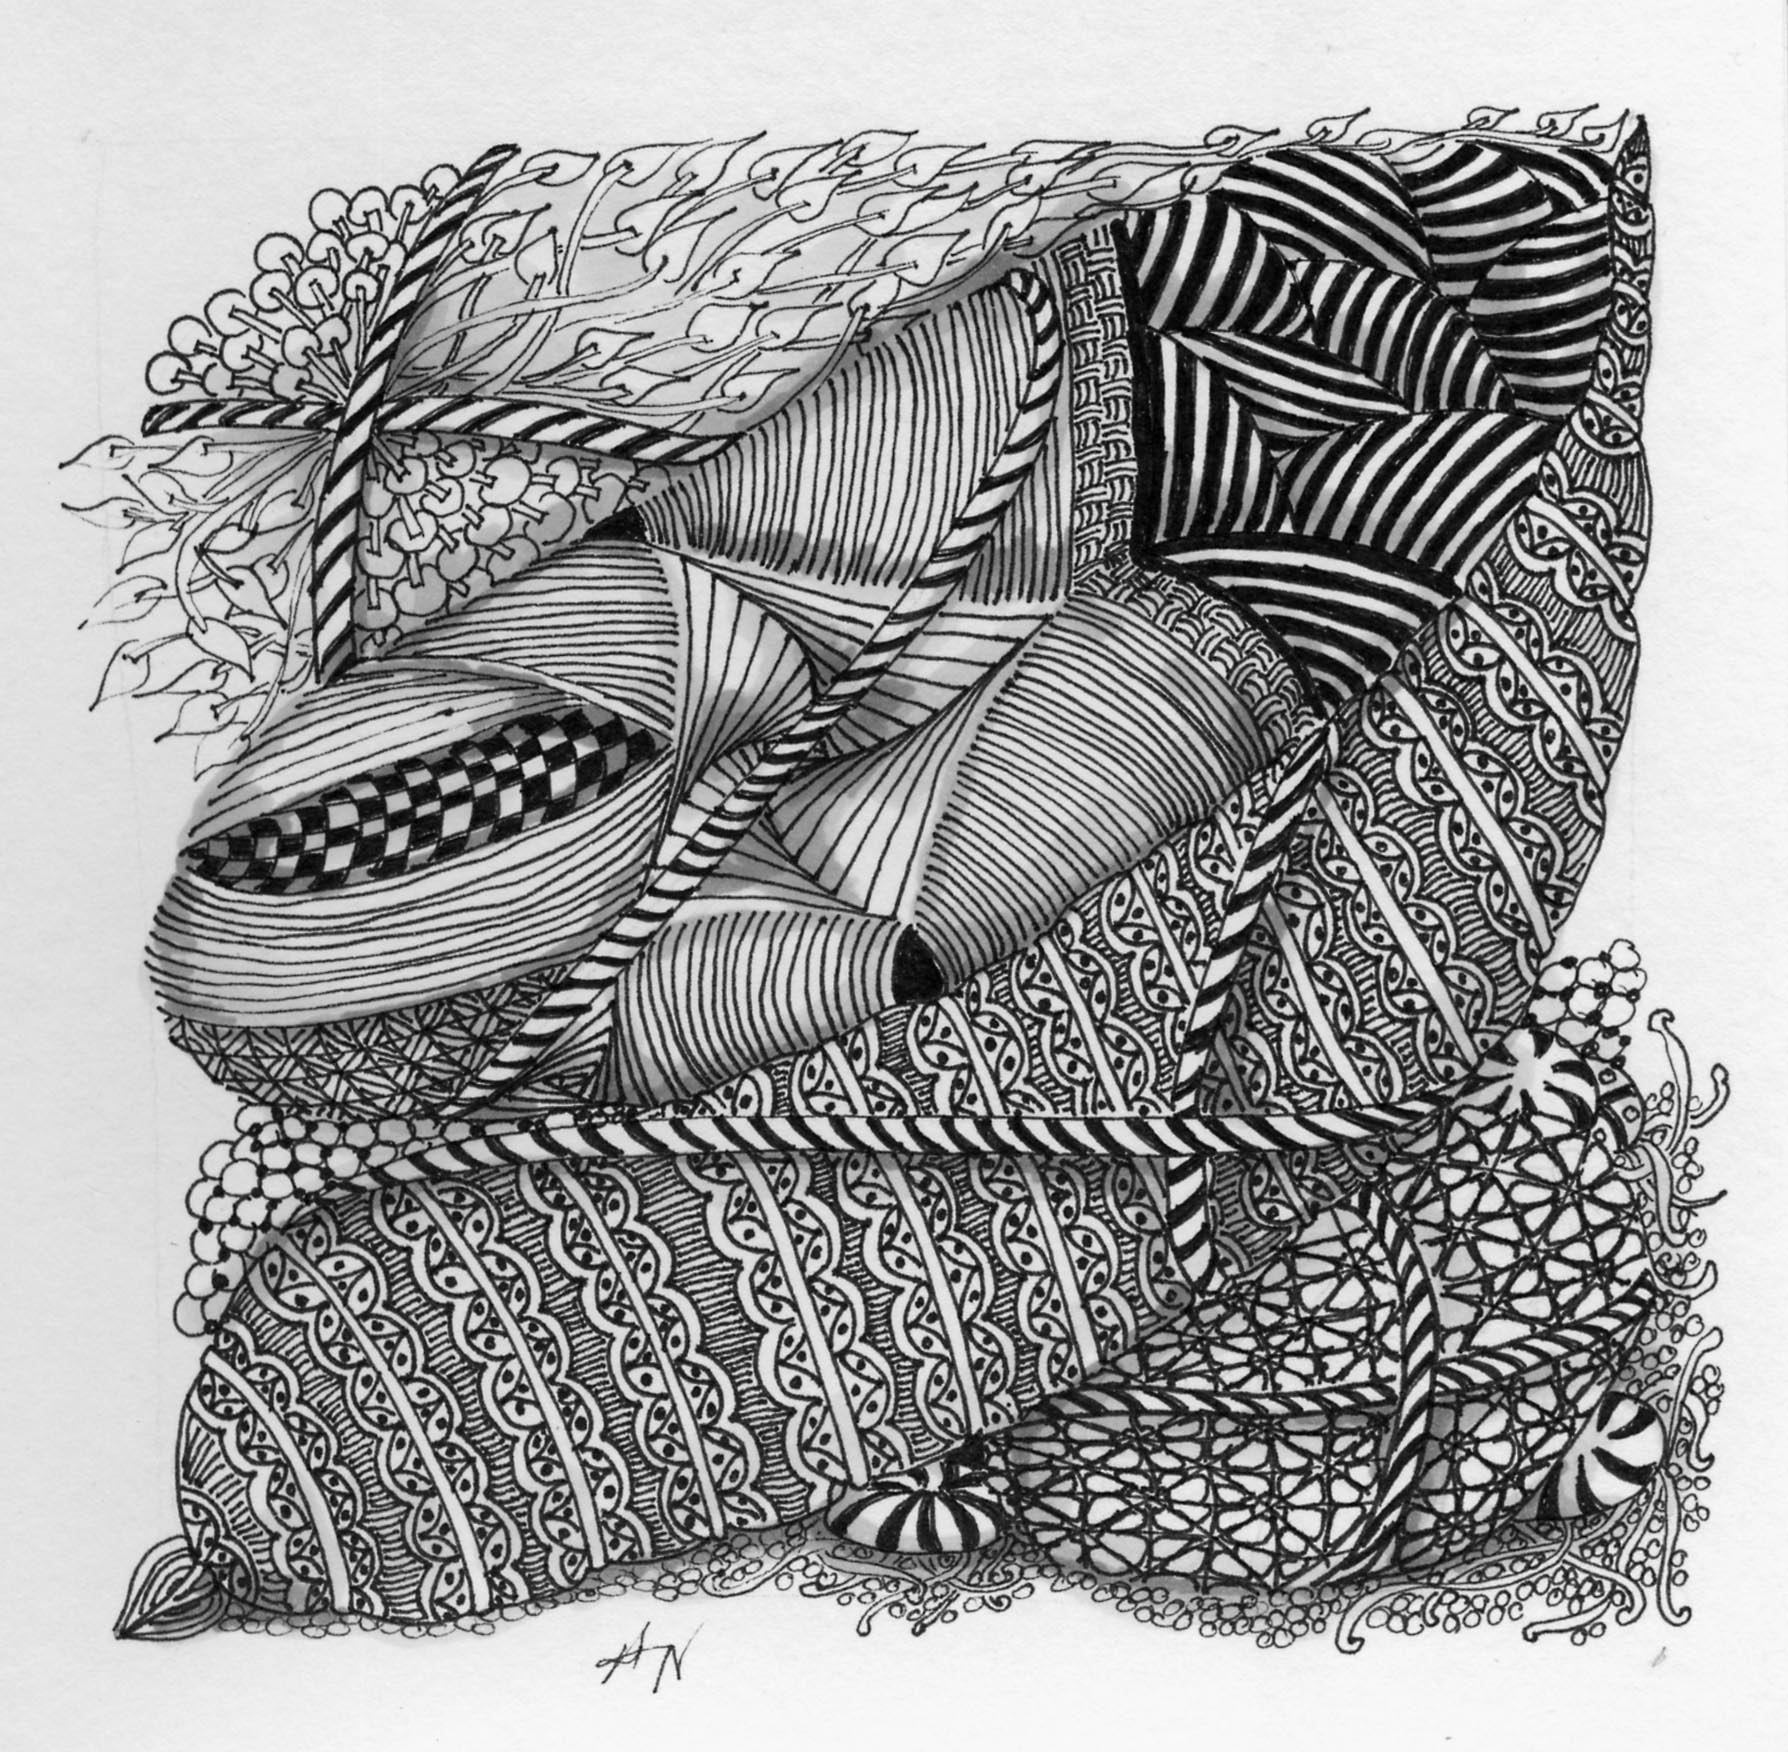 How To Remove Ink From Leather >> Zentangles   Angelabranon's Weblog   Page 2